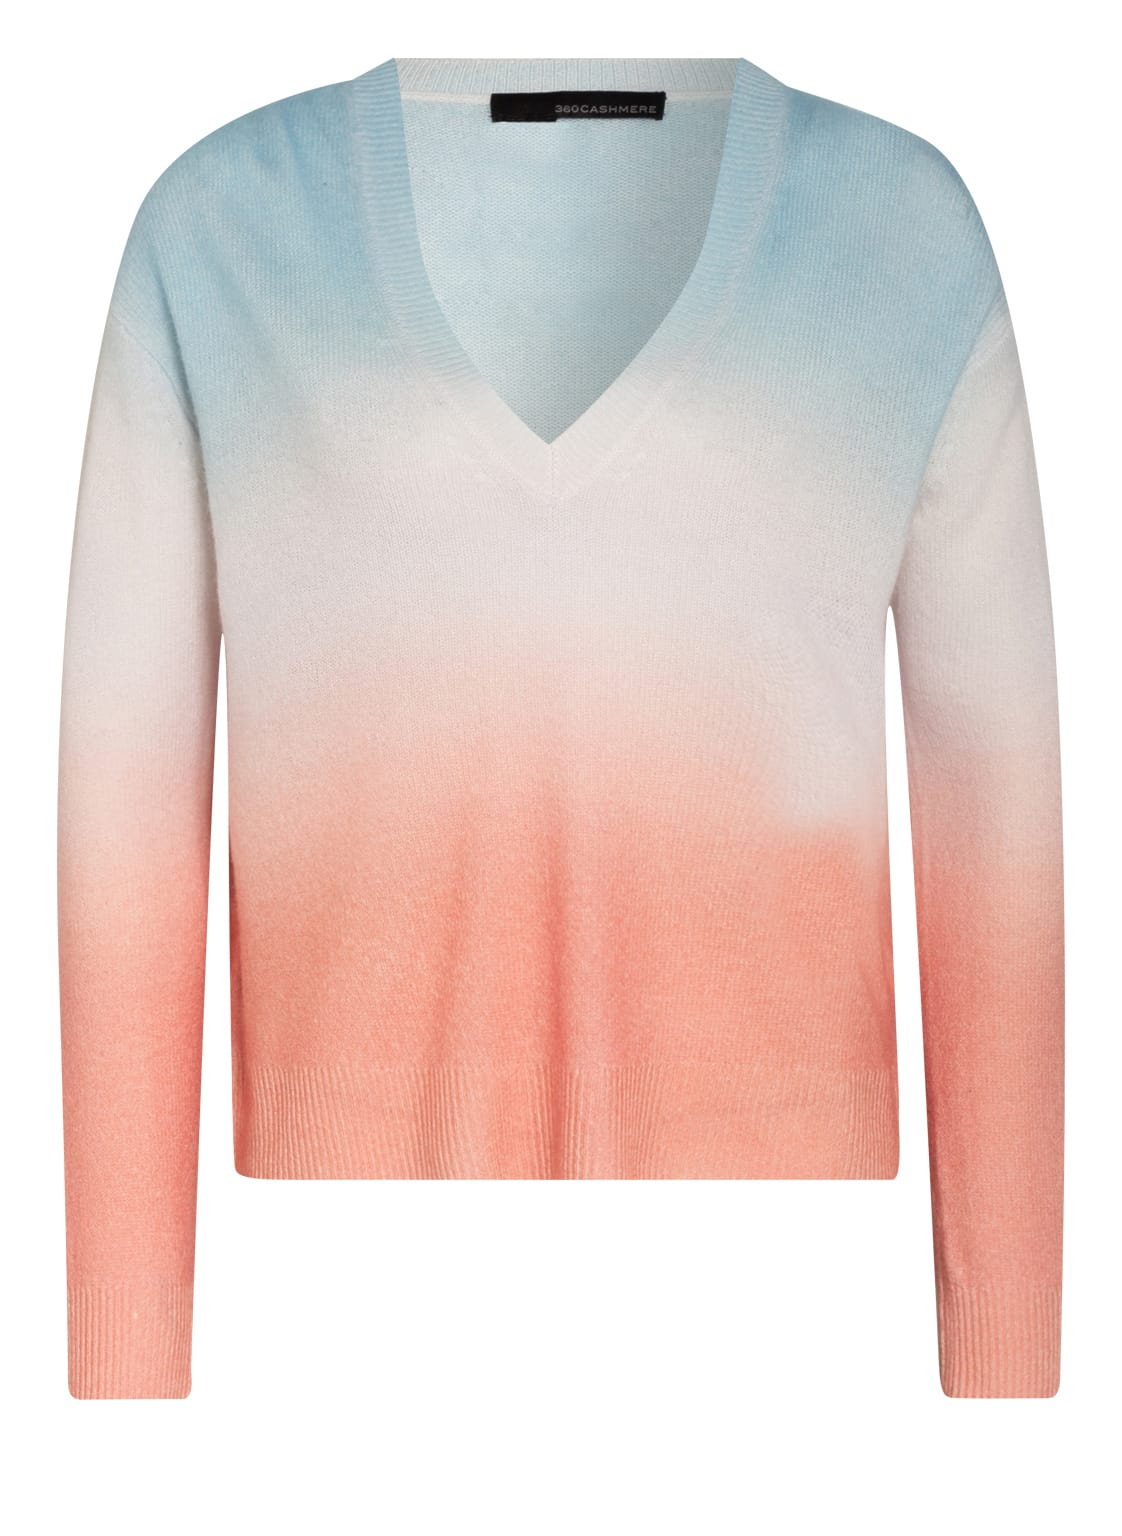 Image of 360cashmere Cashmere-Pullover Kora weiss